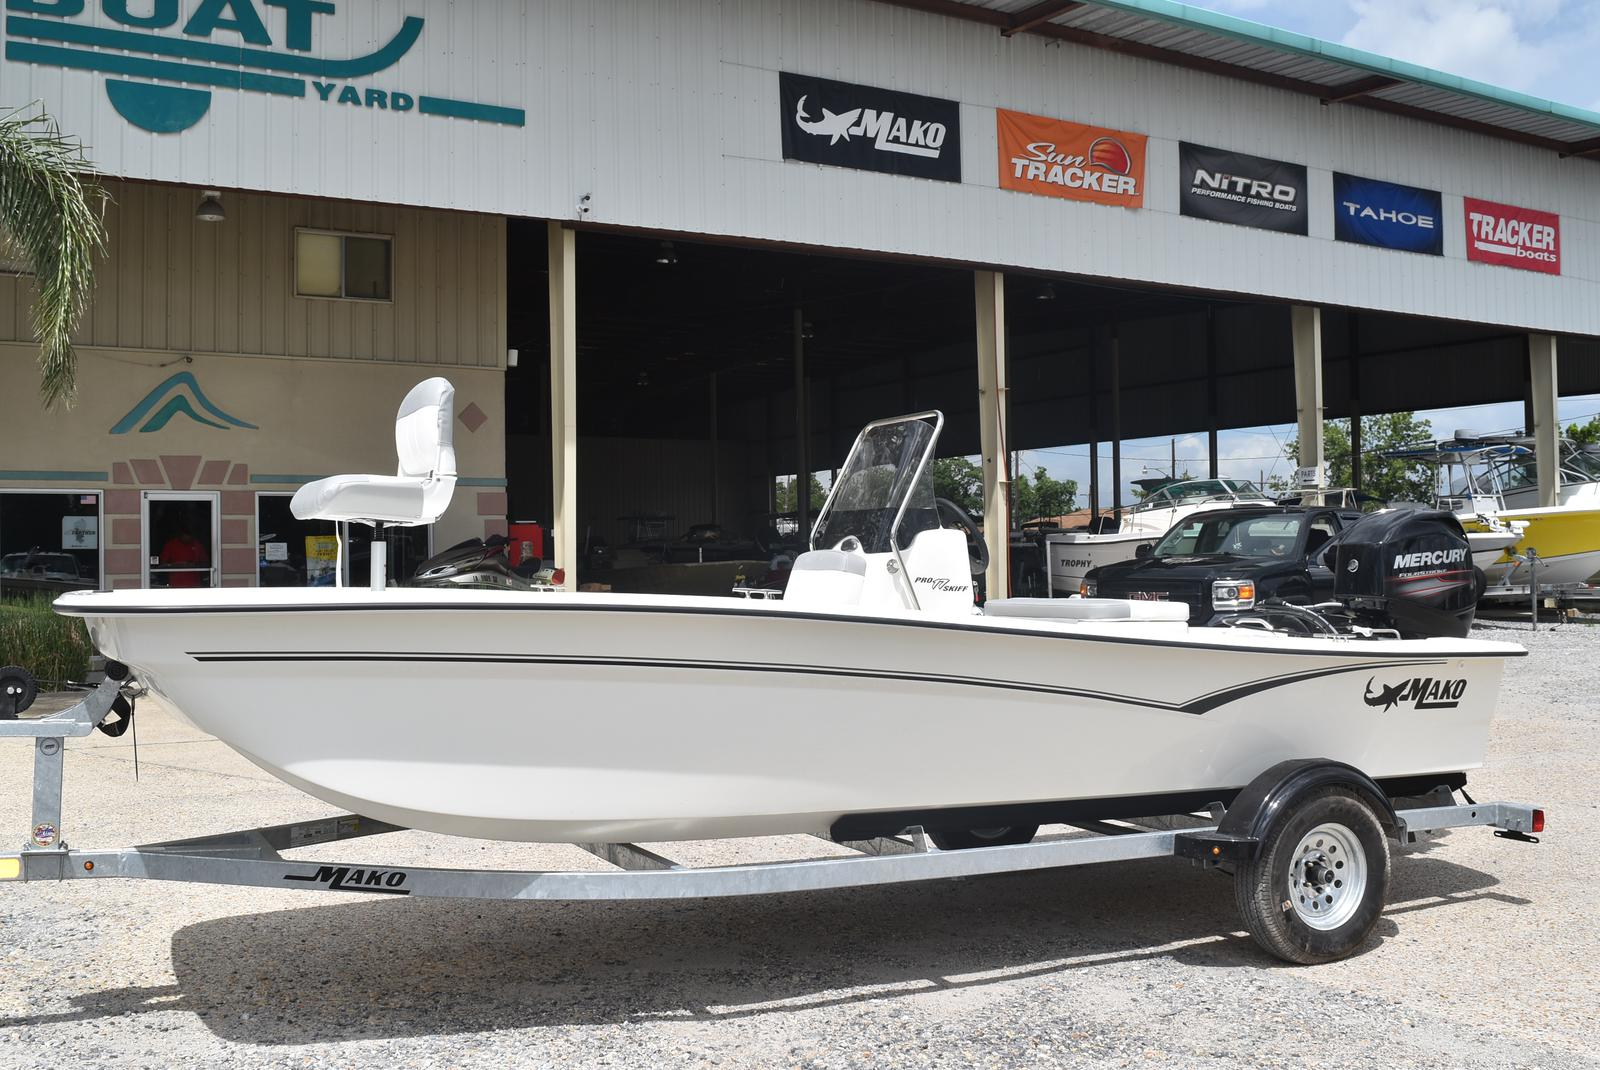 2020 Mako boat for sale, model of the boat is Pro Skiff 17, 75 ELPT & Image # 124 of 702